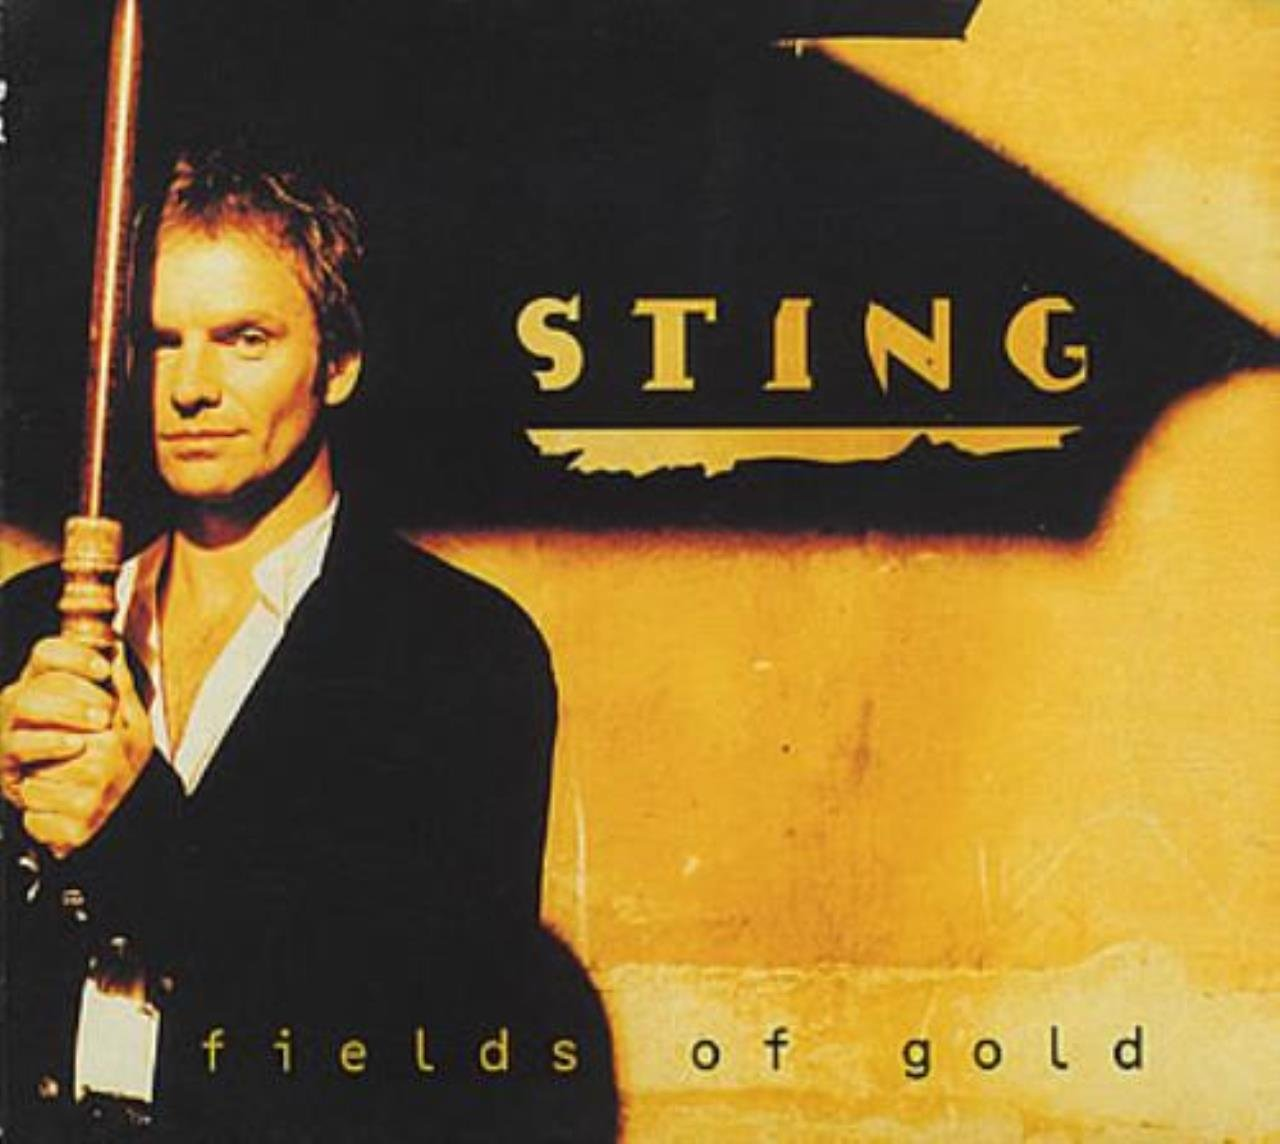 Sting - Fields of Gold + Live tracks - Amazon.com Music